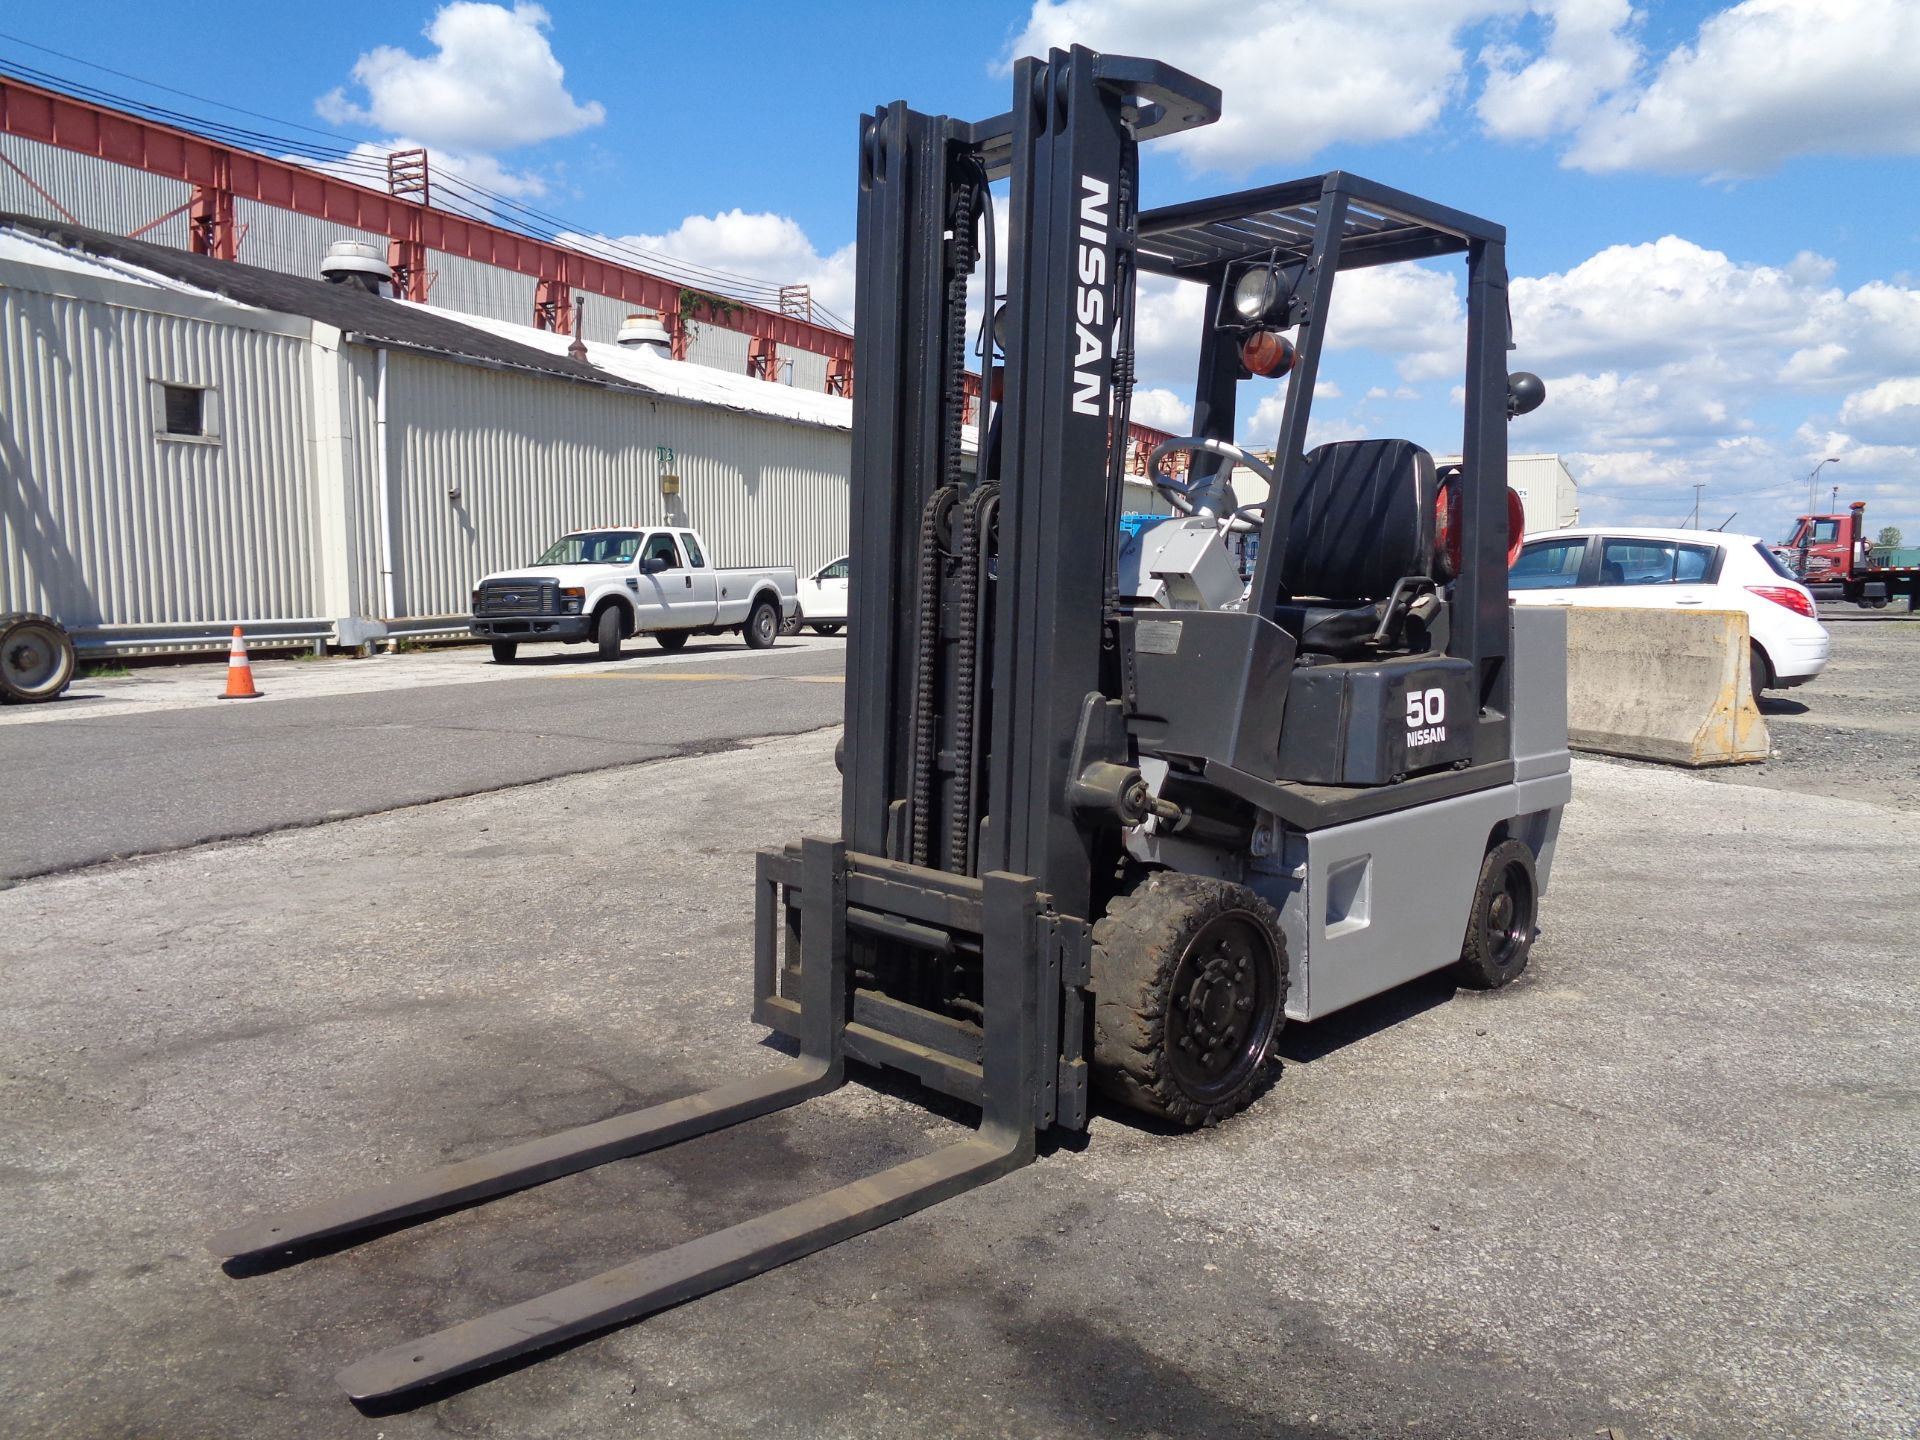 Nissan KCPH02A25PV 4,400 lb Forklift - Image 2 of 17